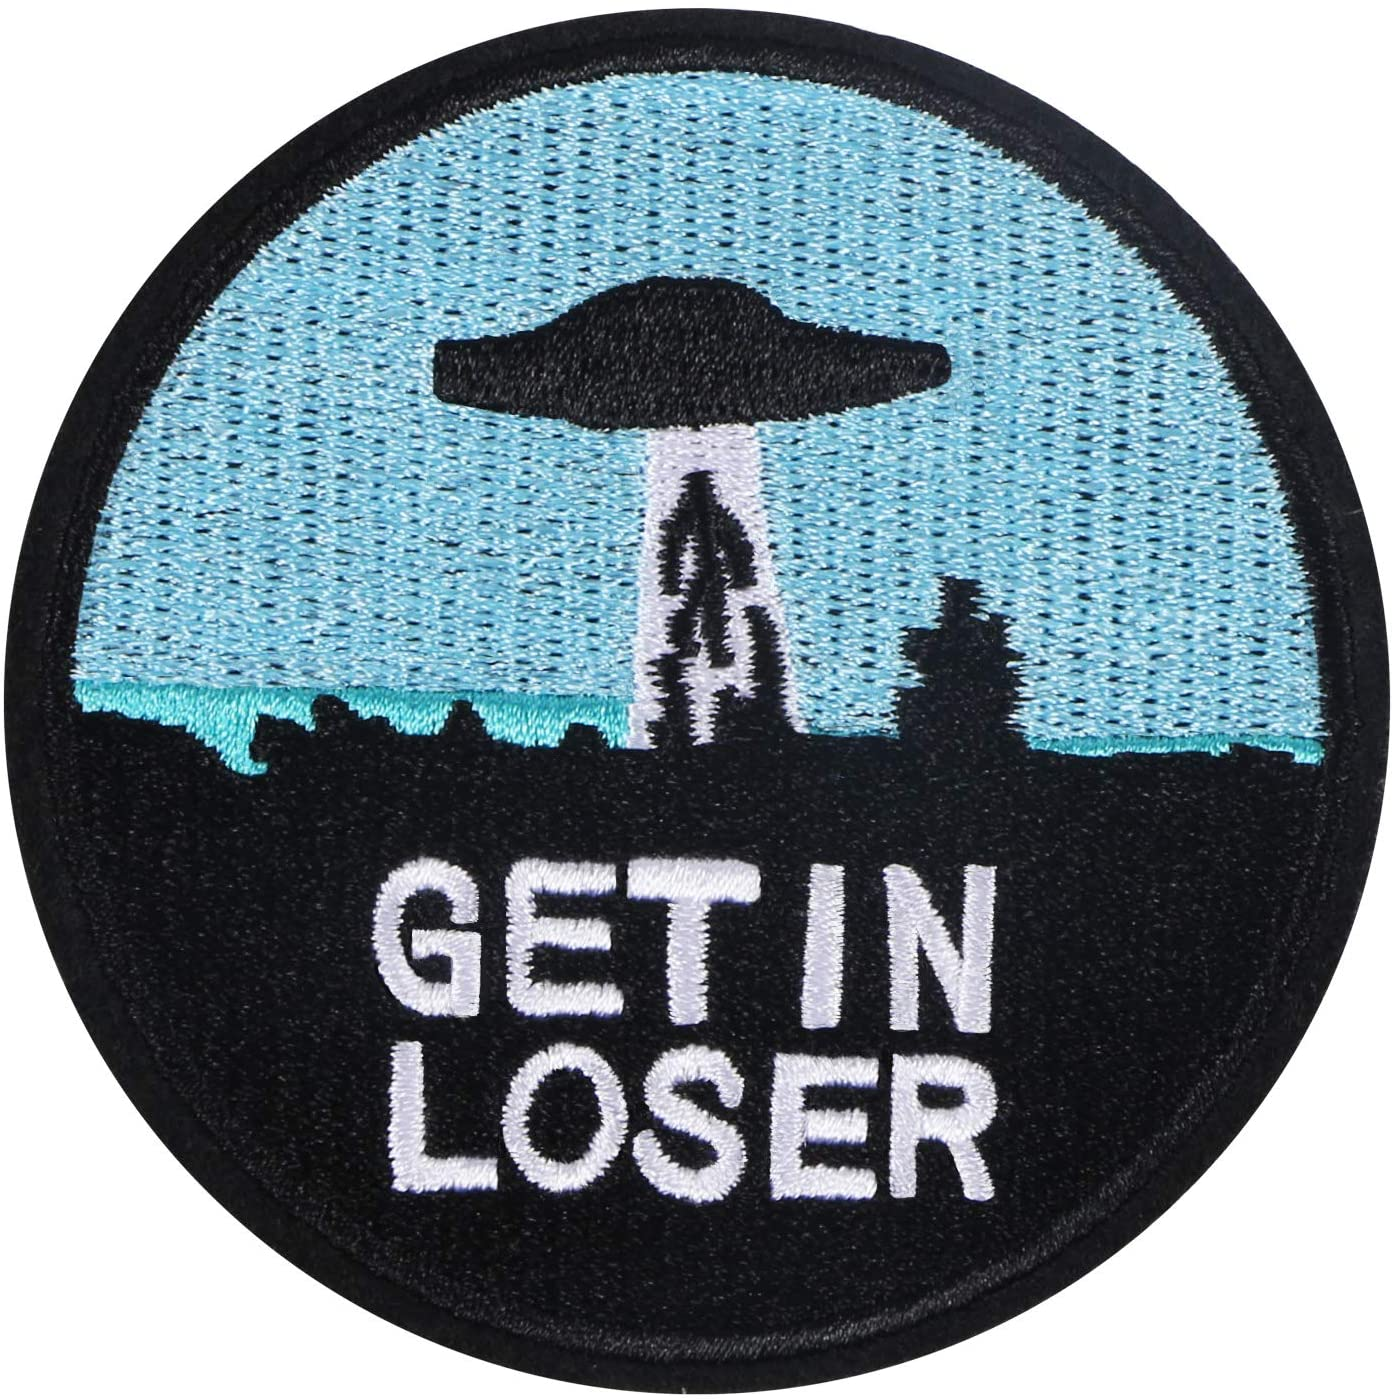 MIKIMIQI Get in Loser Embroidered Applique Patch X - Files UFO Alien Sew on or Iron on Patches for DIY Costume, Jeans, Jackets, Clothing, Bags